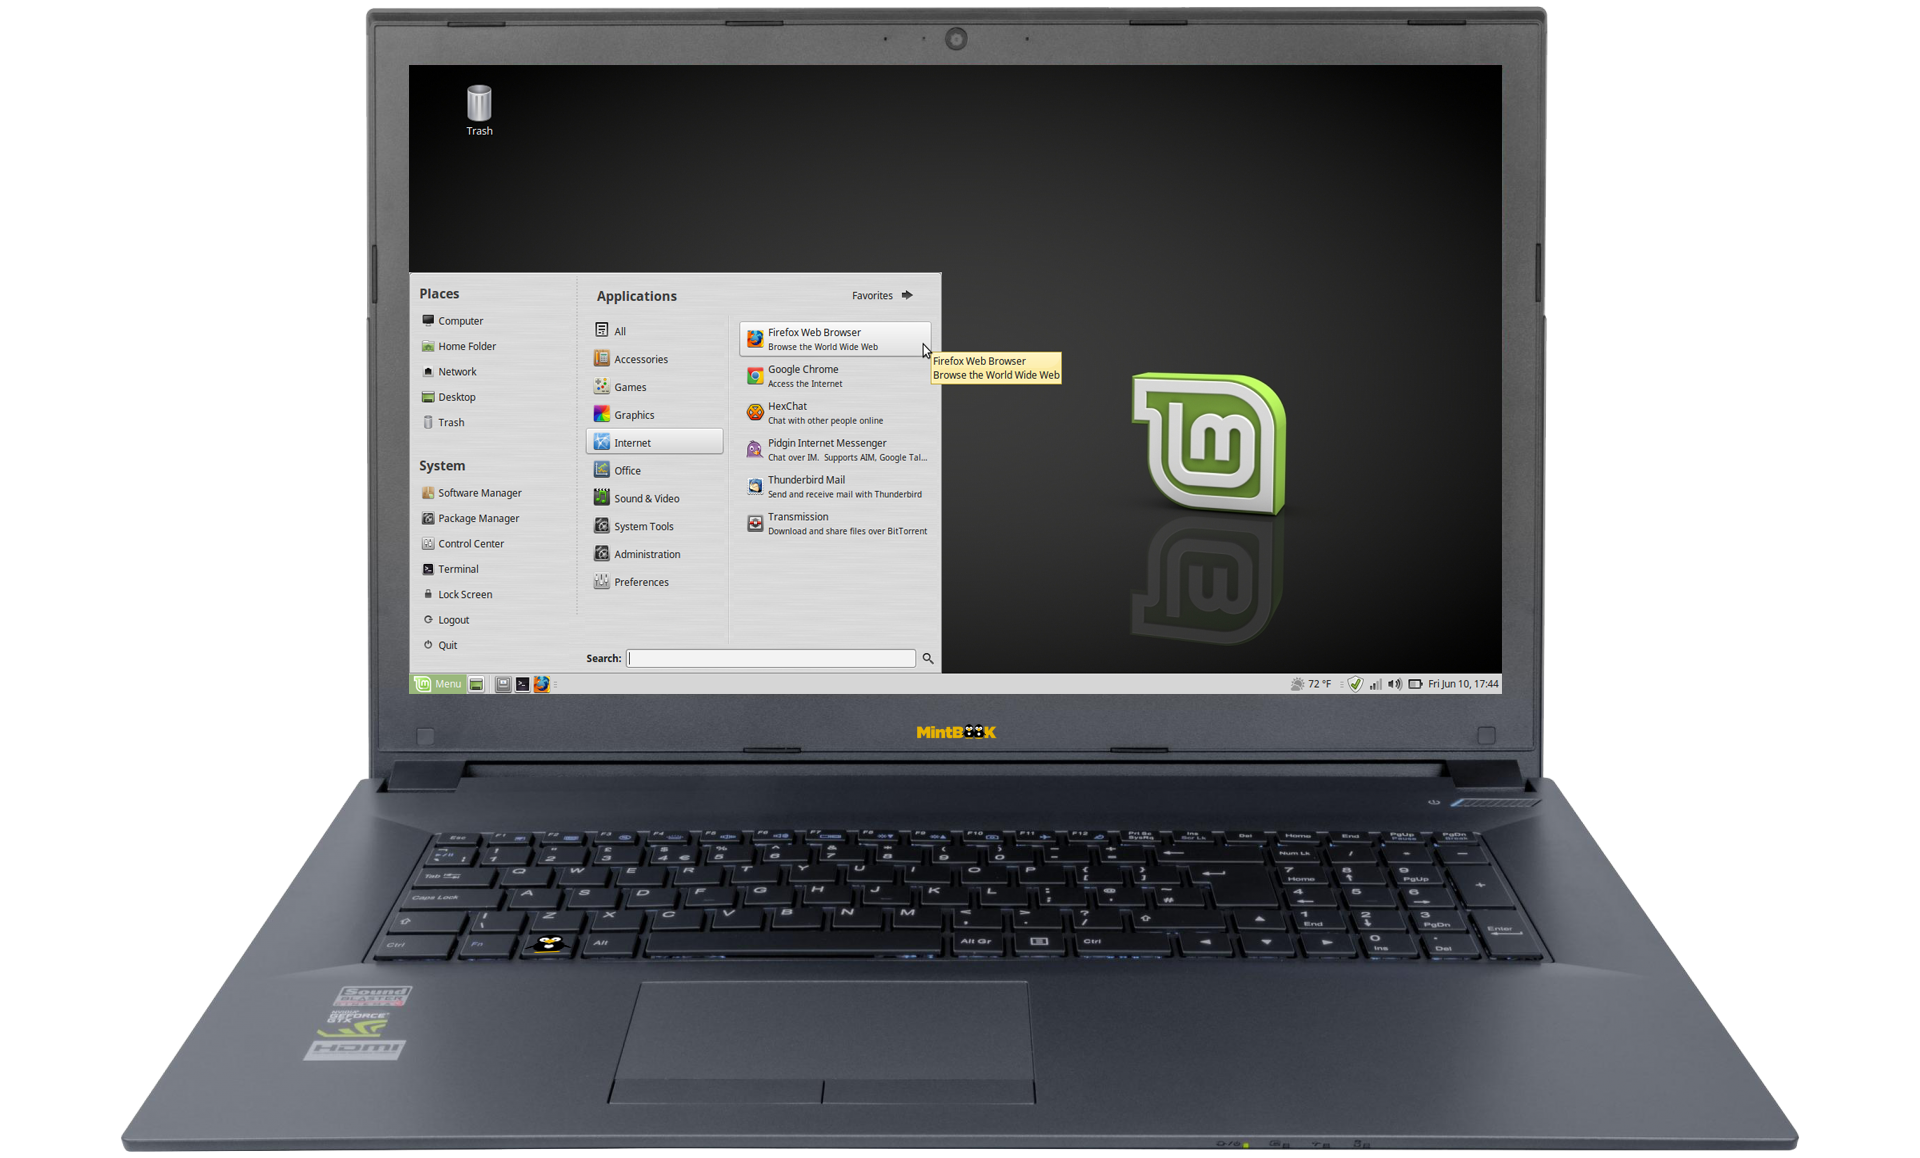 Linux-Mint NoteBook 17.3